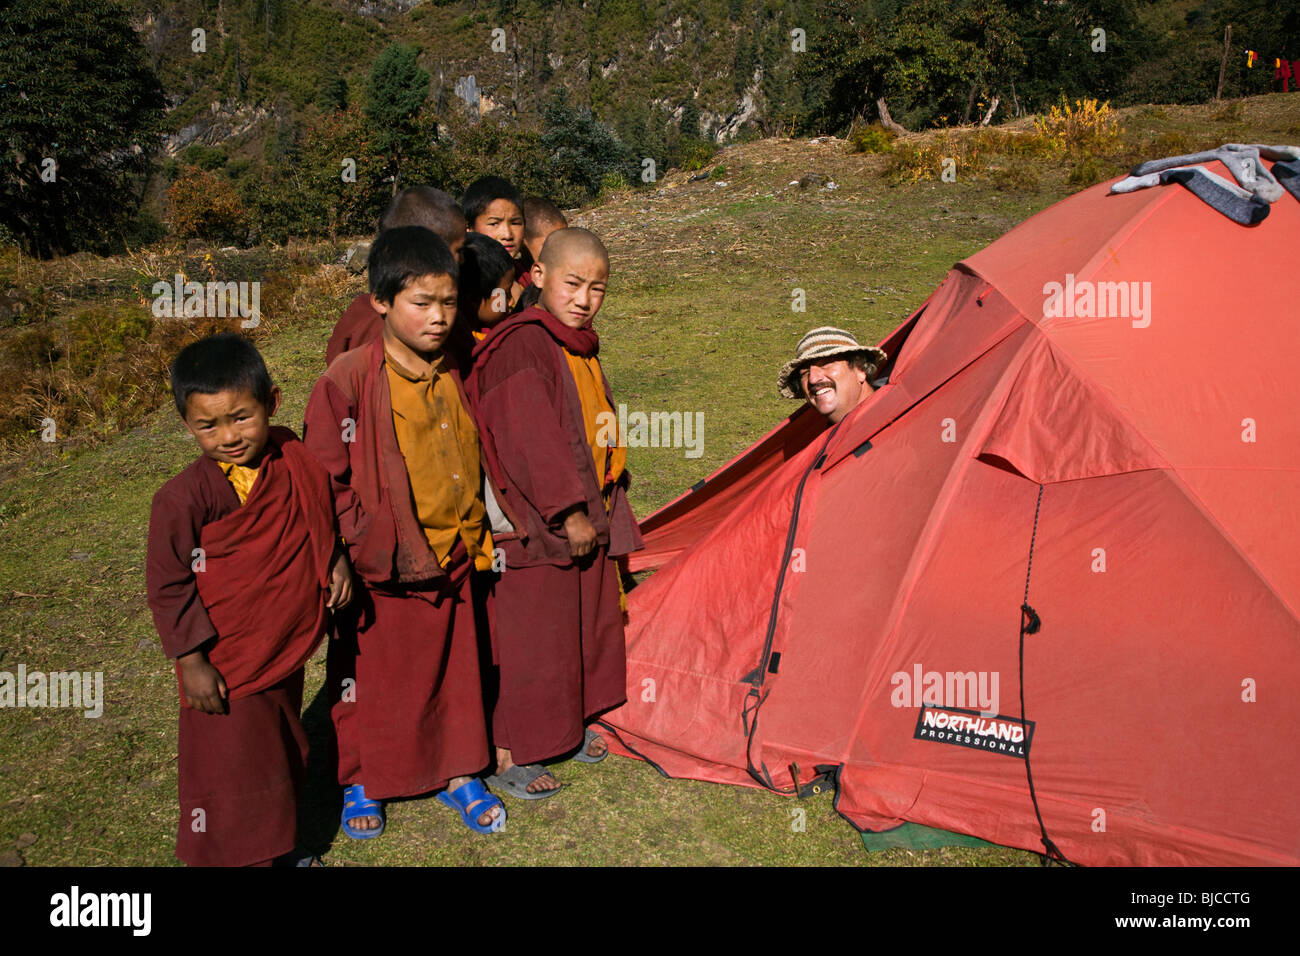 Craig Lovell pops out of his tent to visit with young monks at a remote TIBETAN BUDDHIST MONASTERY - NEPAL HIMALAYA - Stock Image